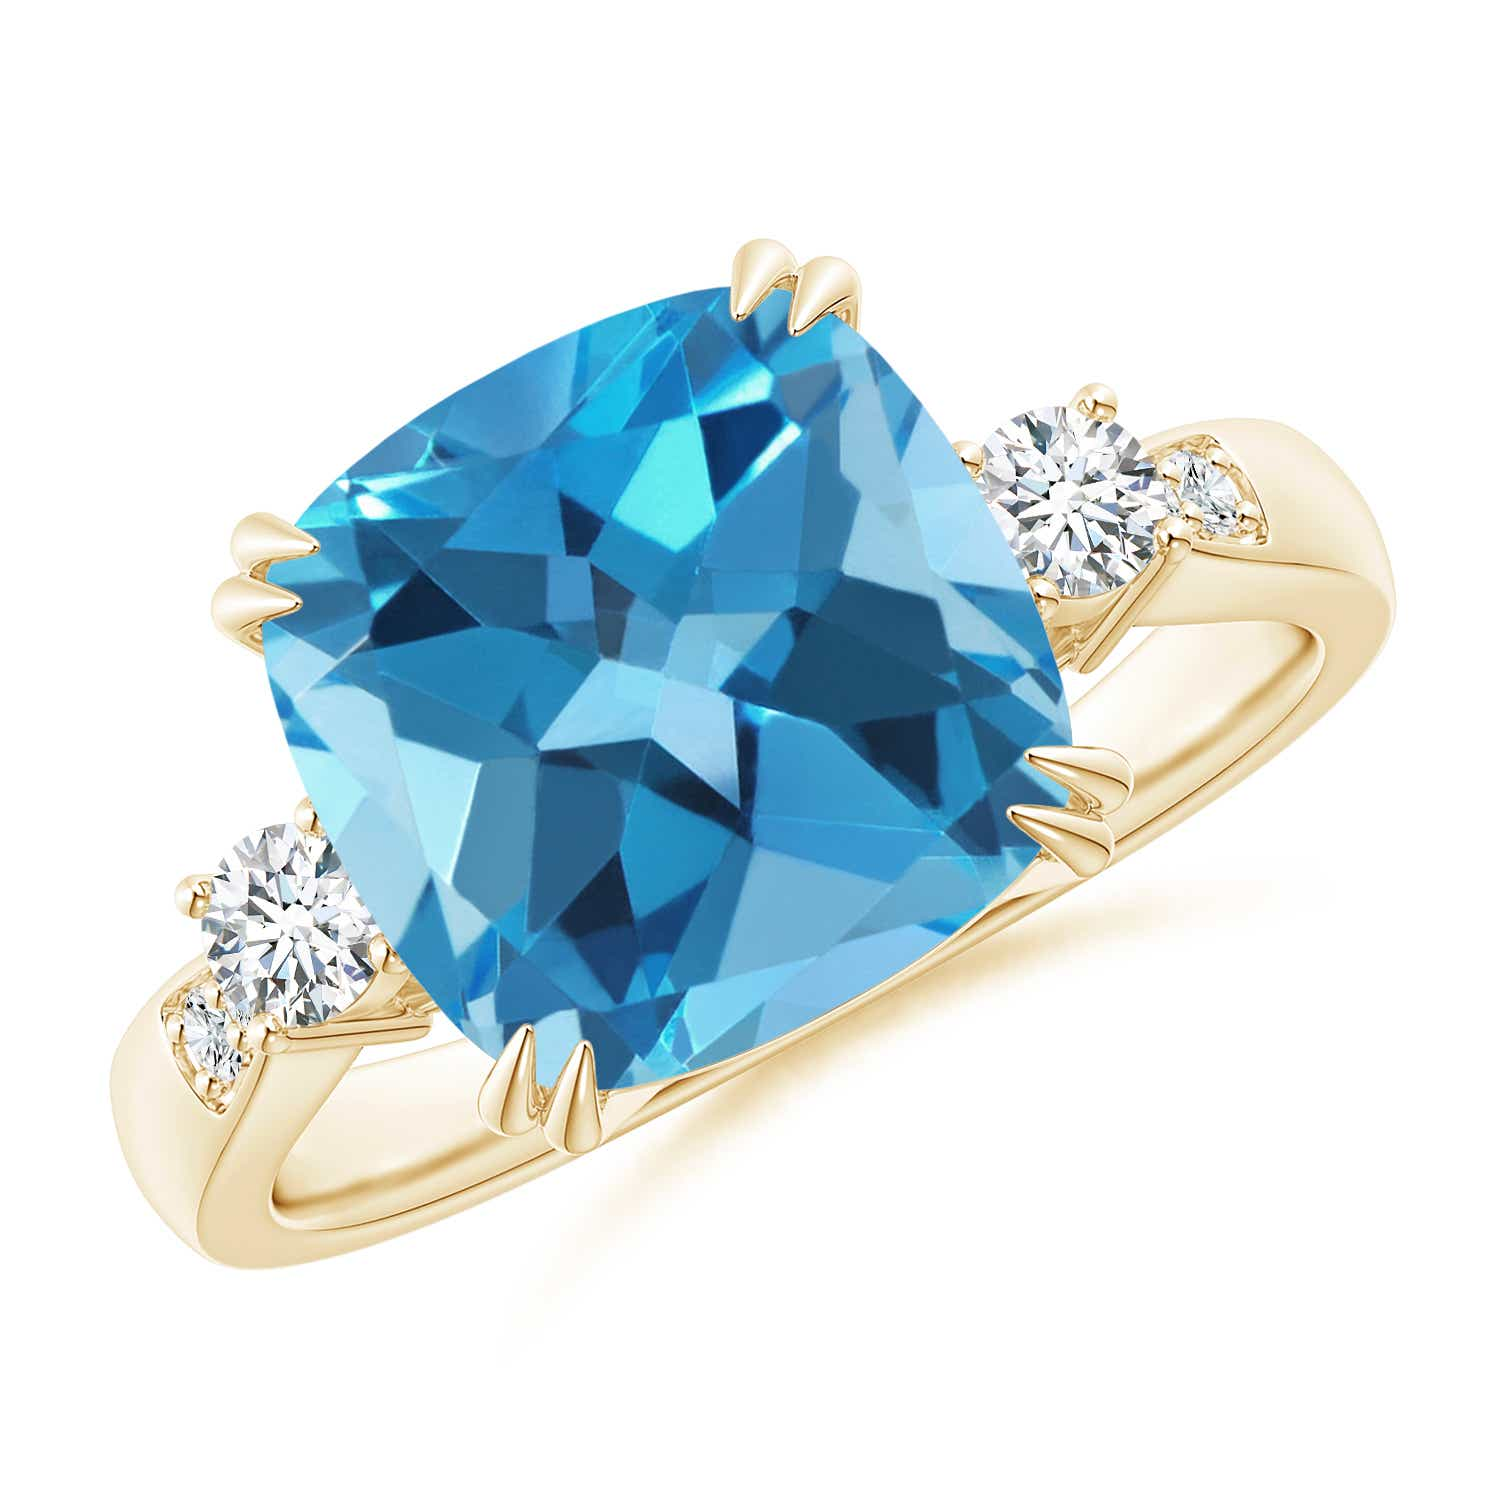 Angara Double Prong-Set Cushion Swiss Blue Topaz Cocktail Ring in Yellow Gold g5QLFs9yW